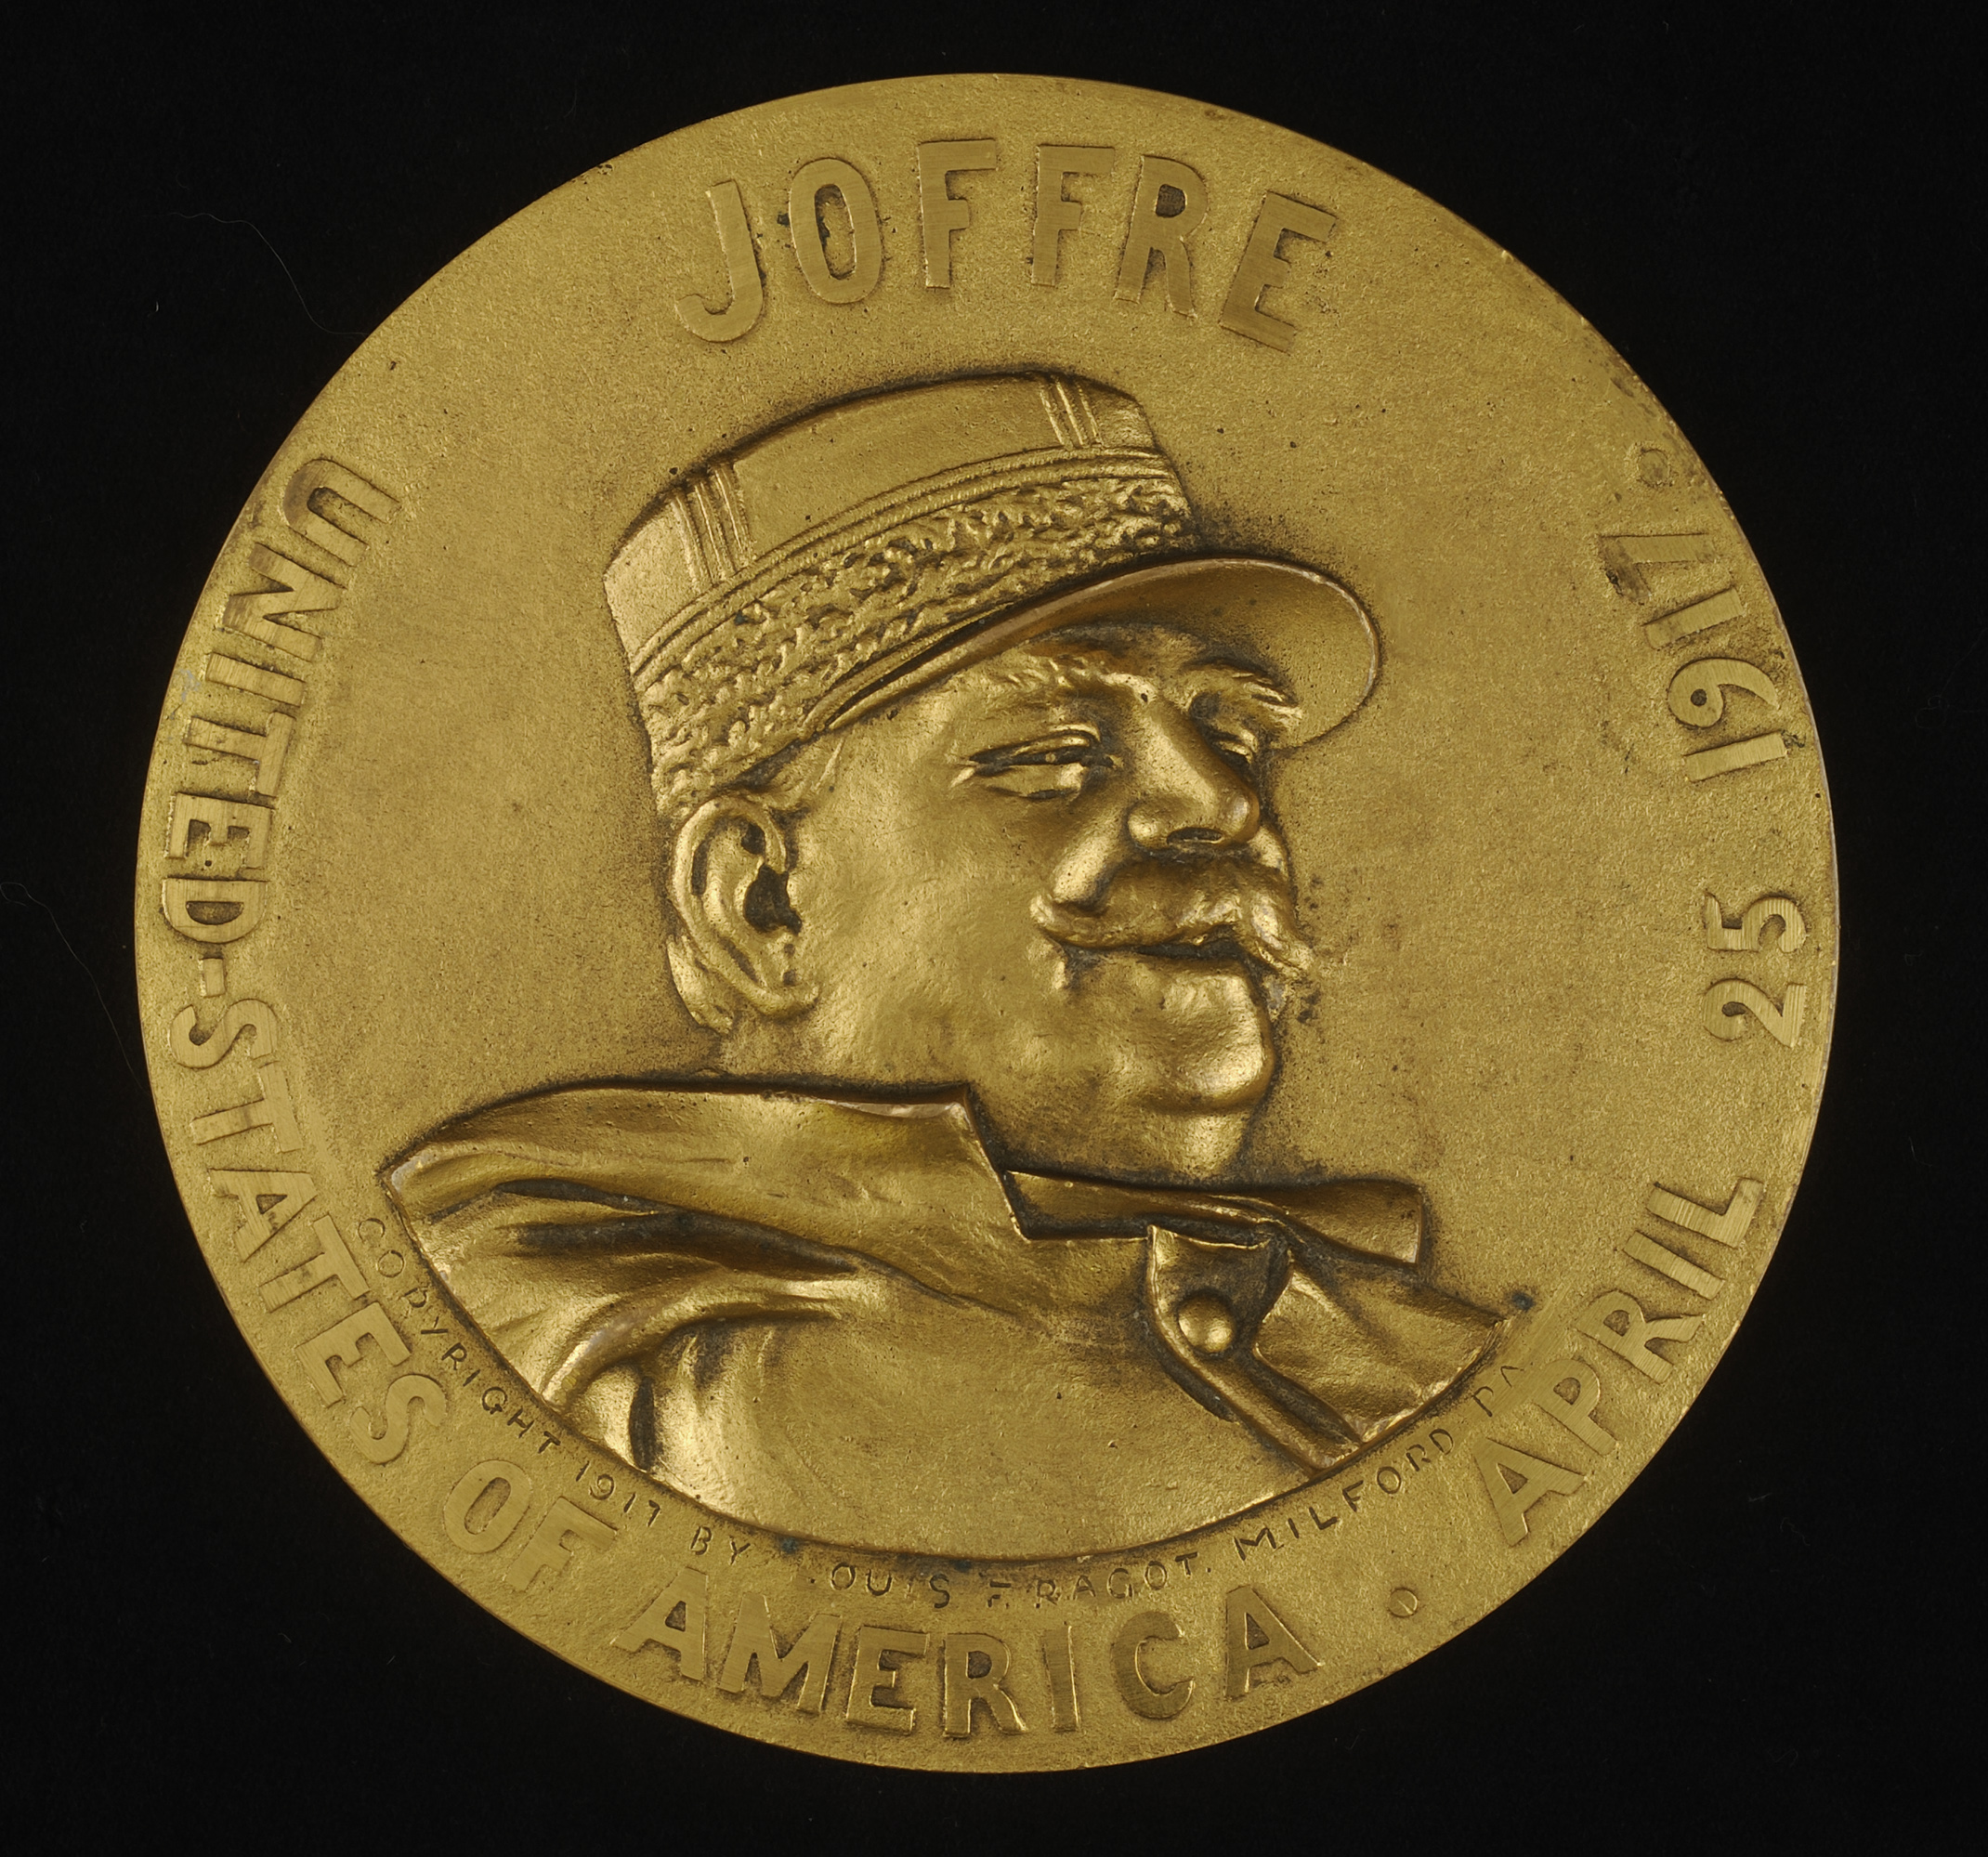 """Joffre — United States of America — April 25, 1917,""  Louis F. Ragot, Struck by the Whitehead & Hoag Company, Newark, N.J., 1917"